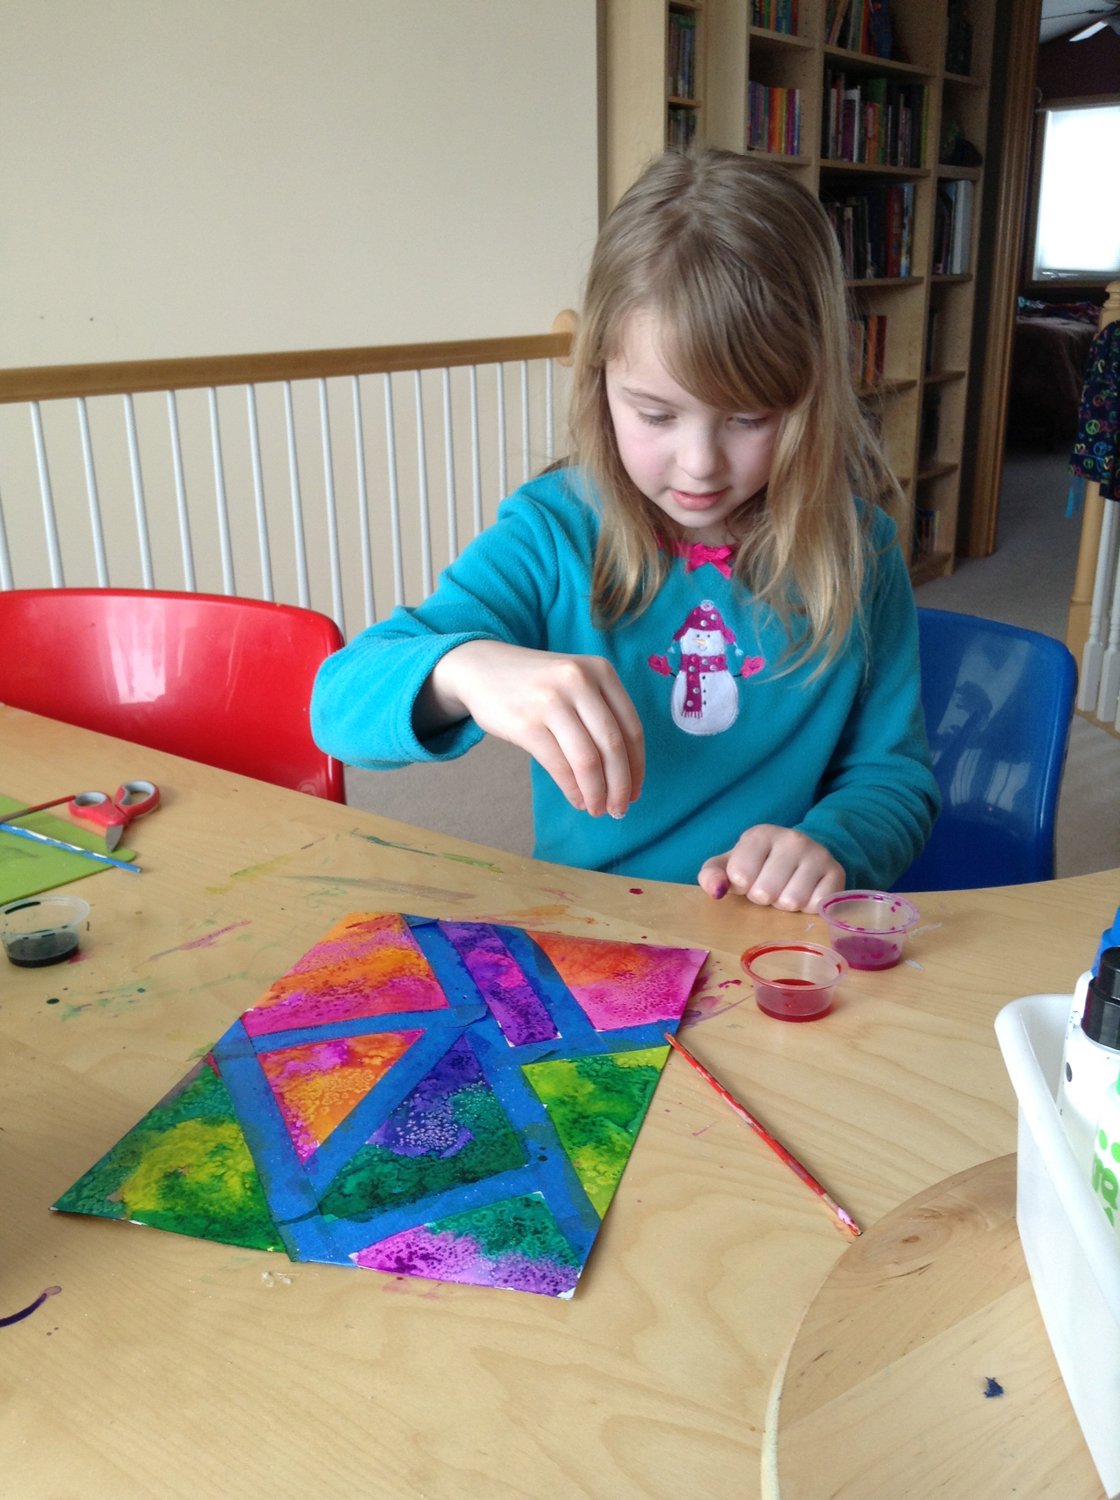 Holly's Arts And Crafts Corner: Art & Science Collide